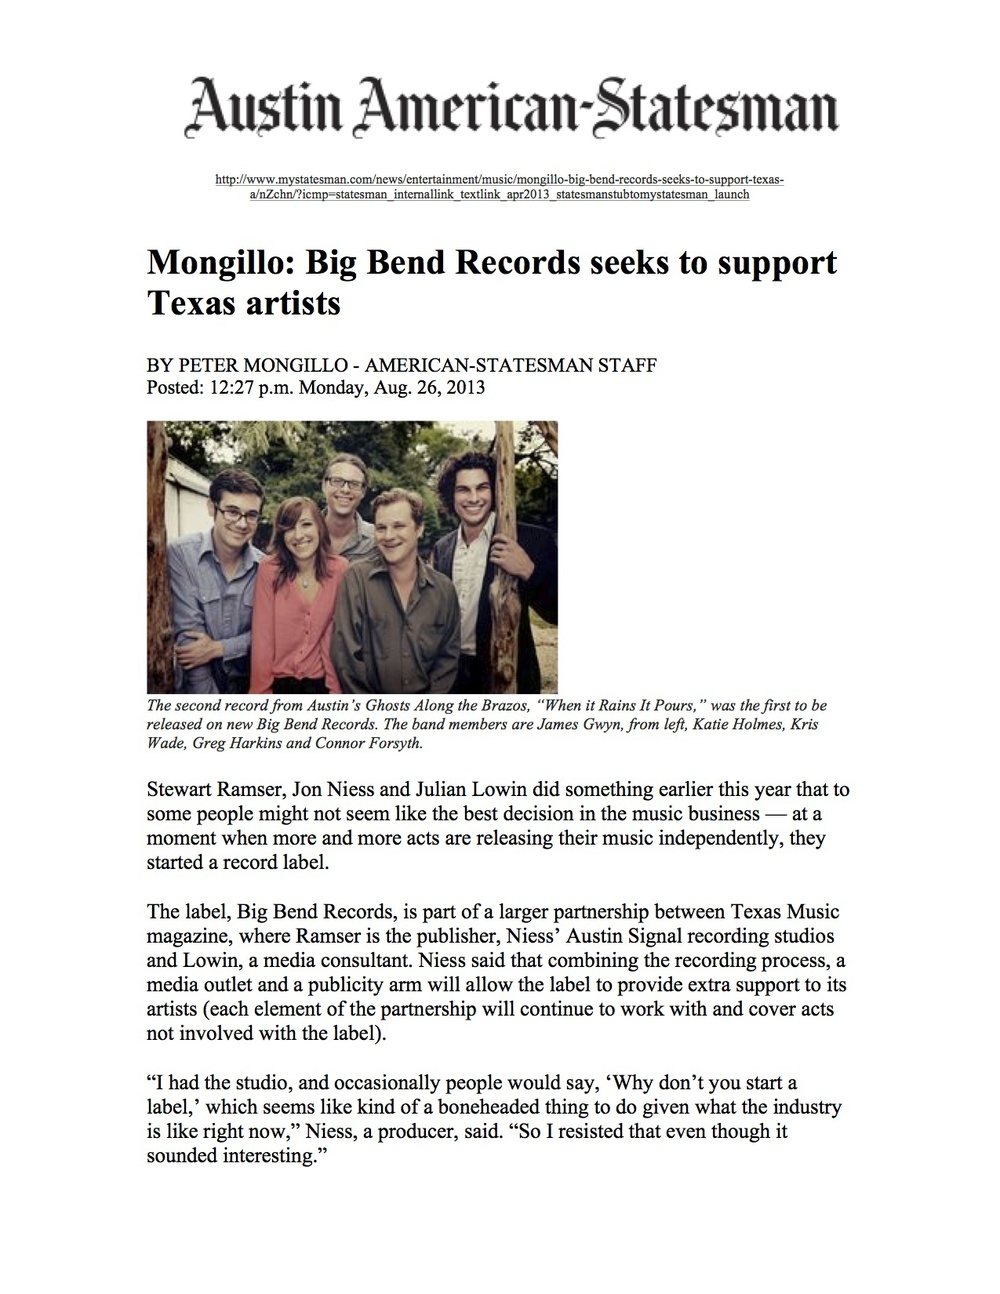 Big Bend Records_Austin American-Statesman_August 26, 2013 jpeg.jpg